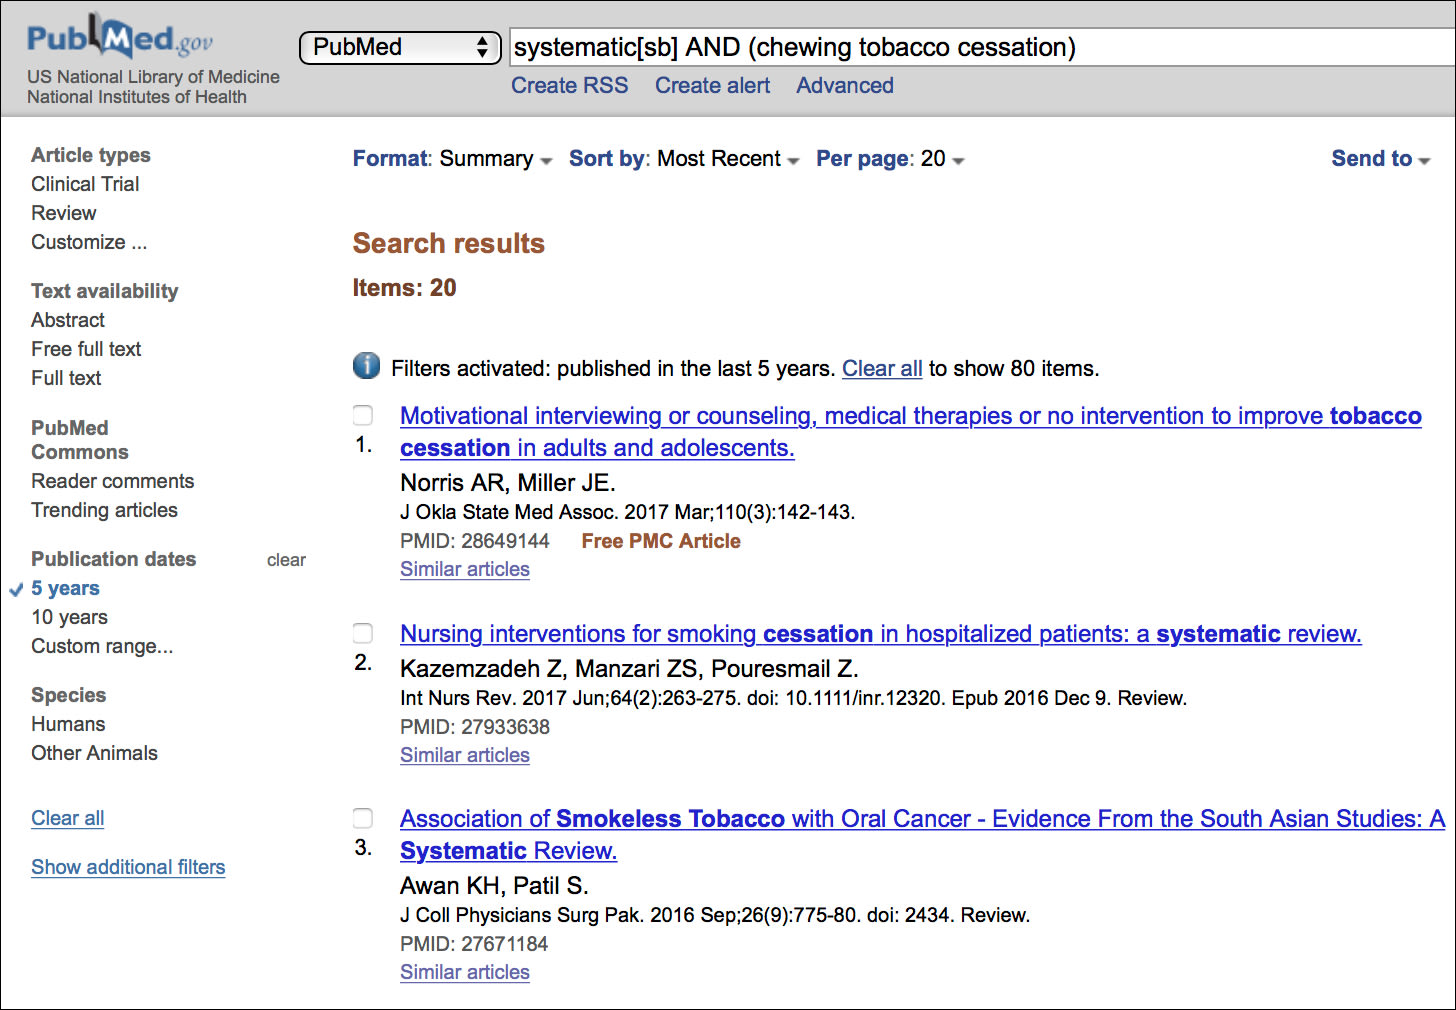 Image: Results of Search for Chewing Tobacco Cessation